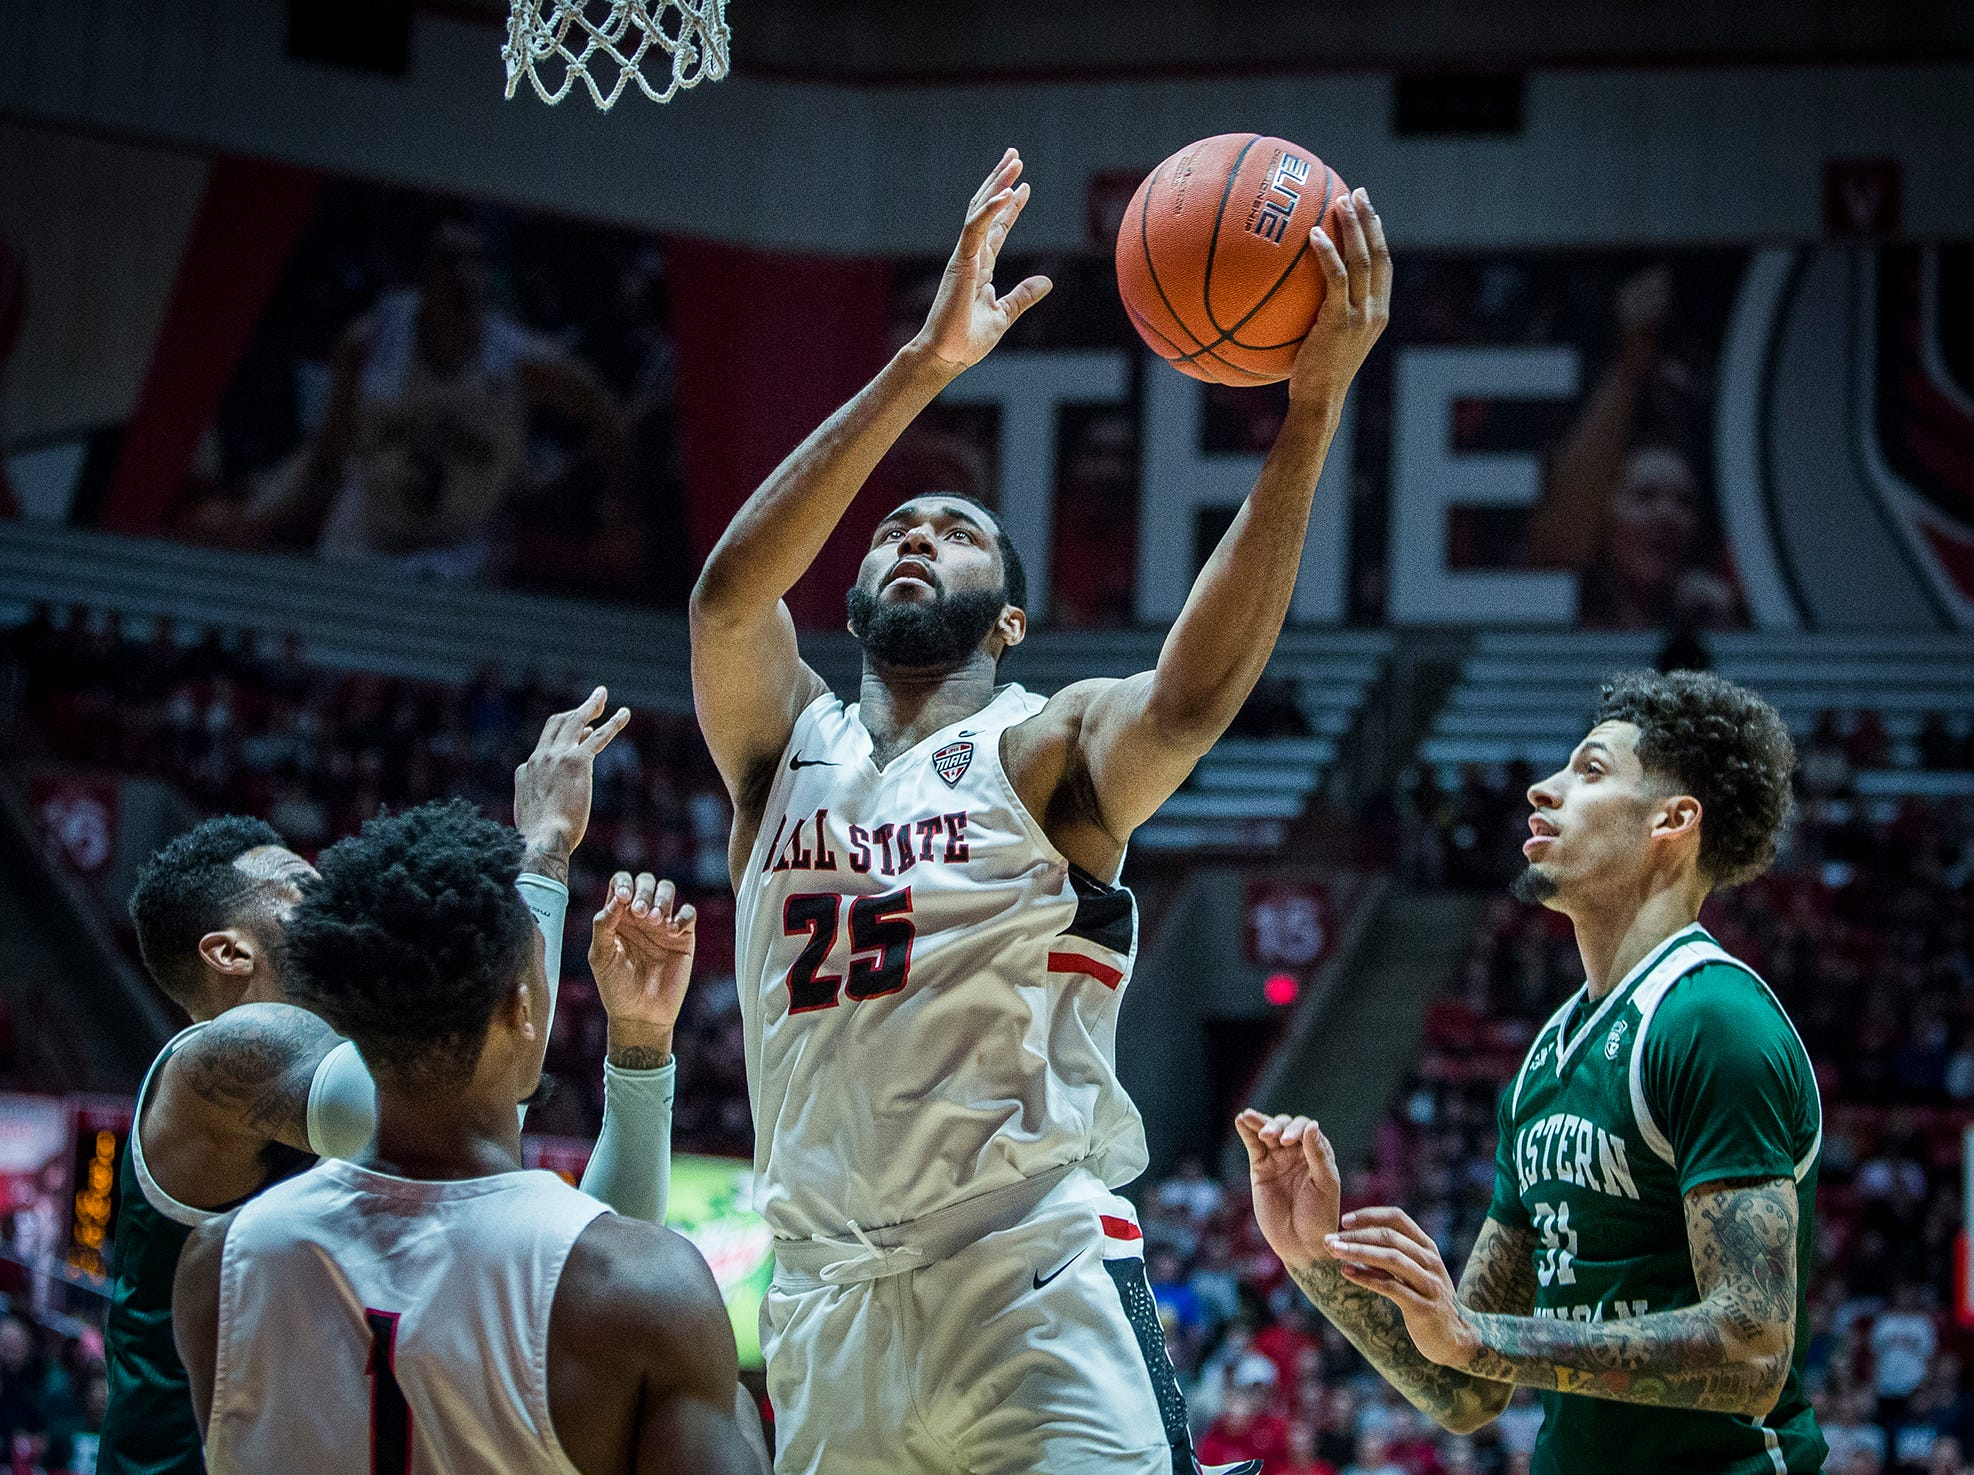 Ball State's Tahjai Teague shoots past Eastern Michigan's defense during their game at Worthen Arena Tuesday, Jan. 8, 2019.